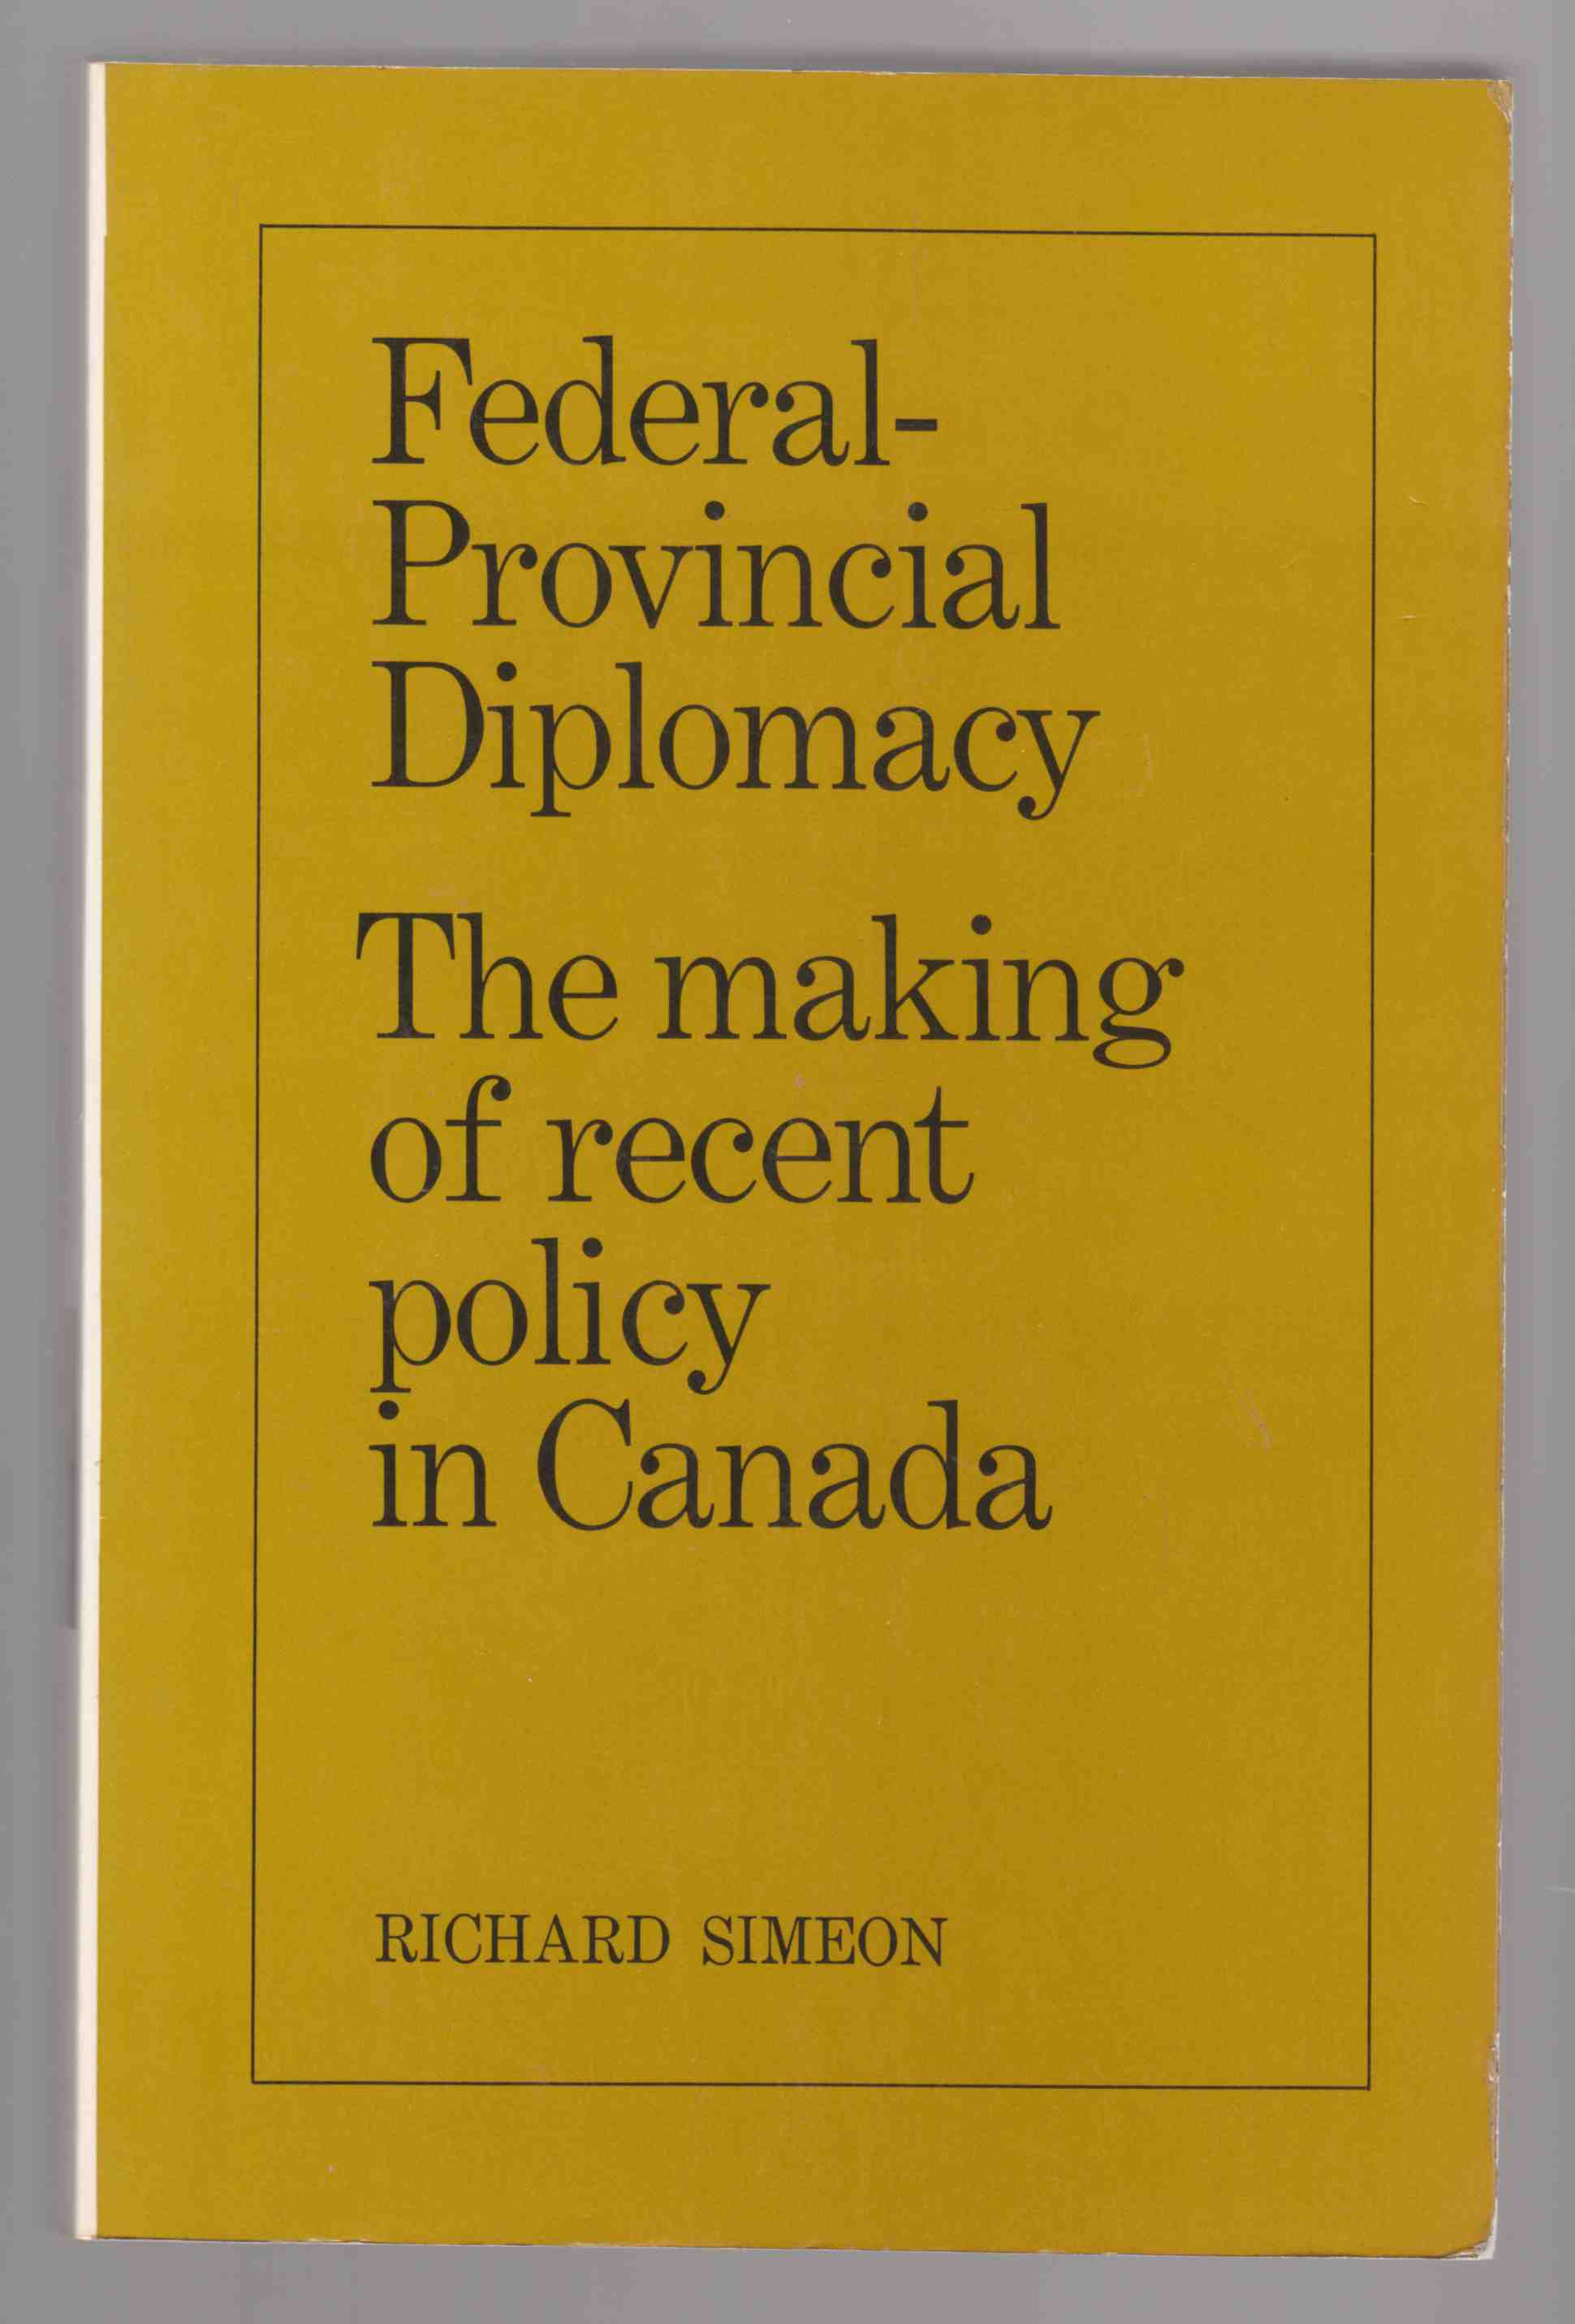 Image for Federal-Provincial Diplomacy The Making of Recent Policy in Canada